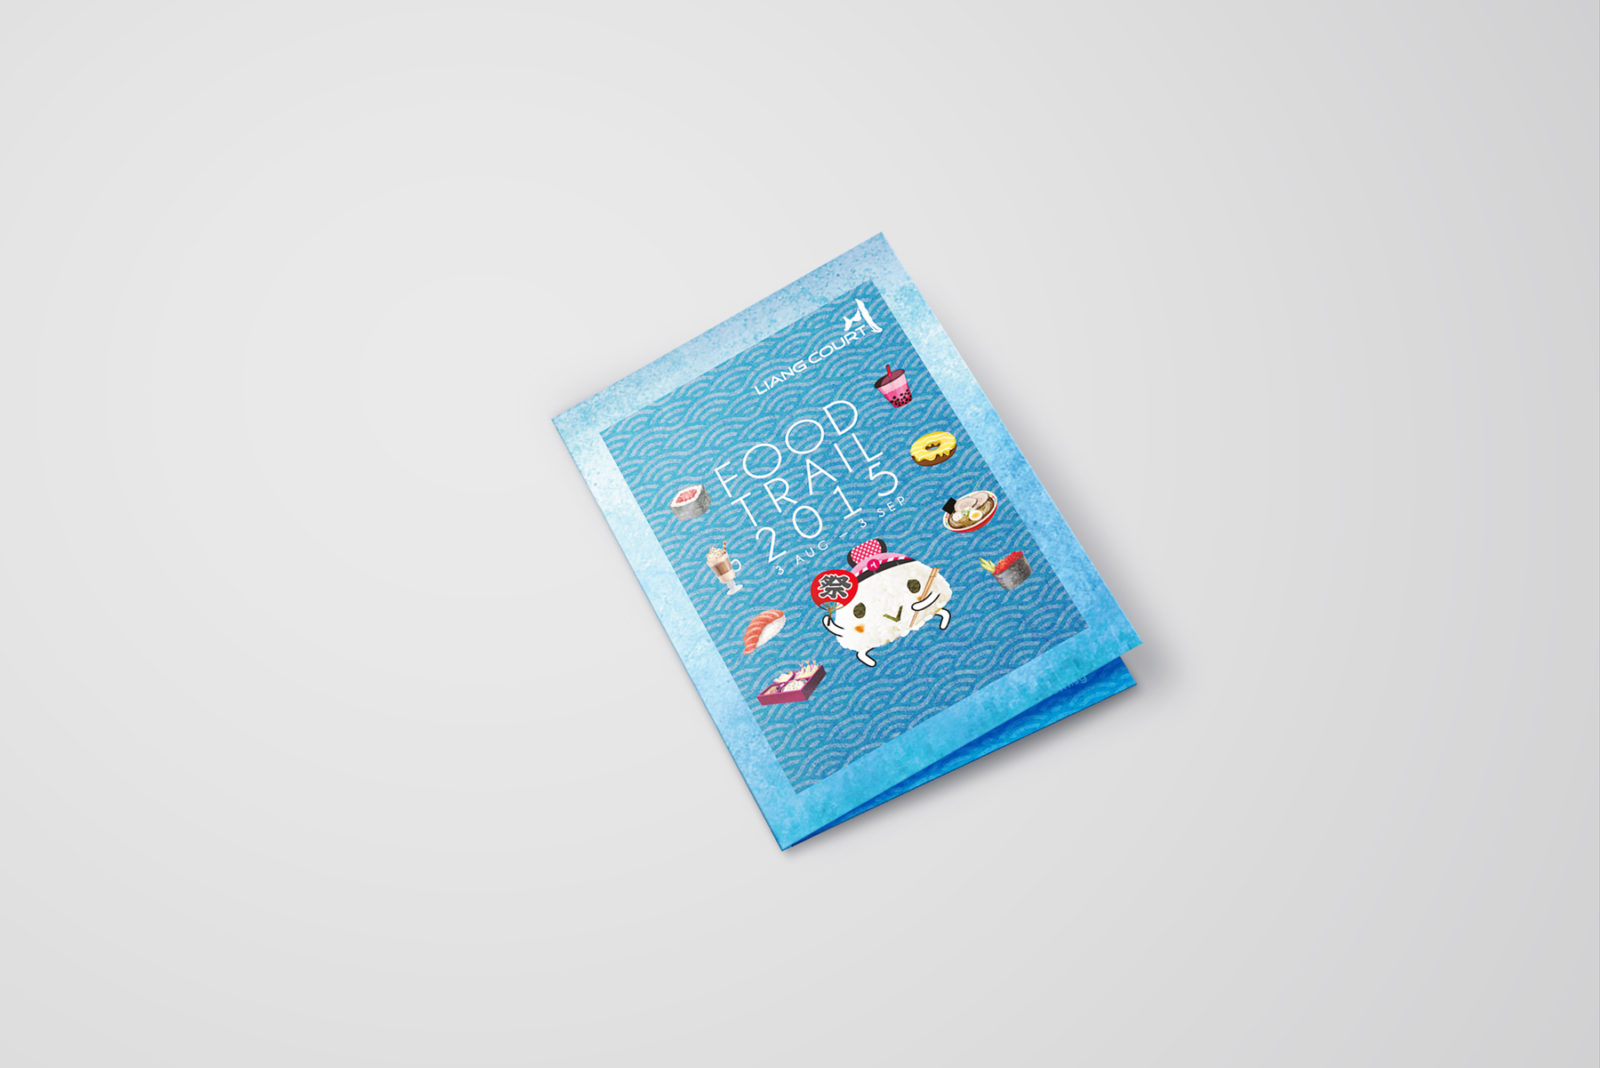 Design and Digital Marketing Portfolio - Liang Court Summer Festival 2015 - Food Trail Coupons Sleeve 1